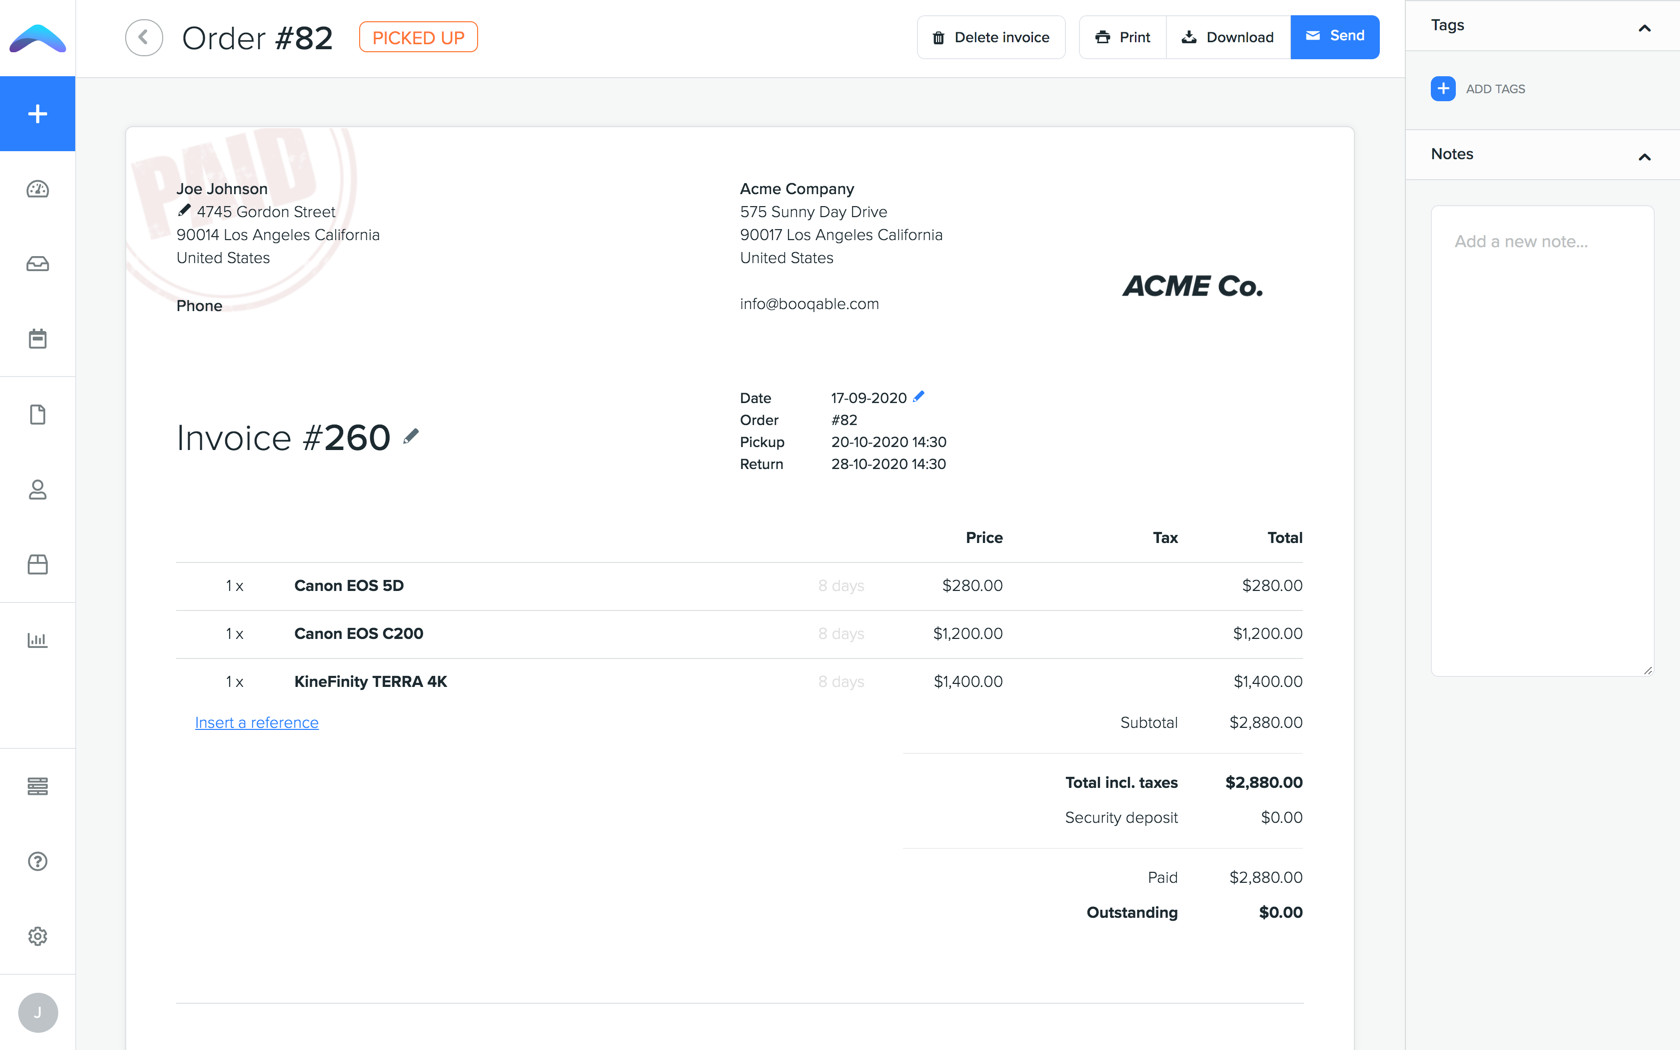 Generate customizable quotes, contracts, and invoices. Send them to customers directly from Booqable using email templates.